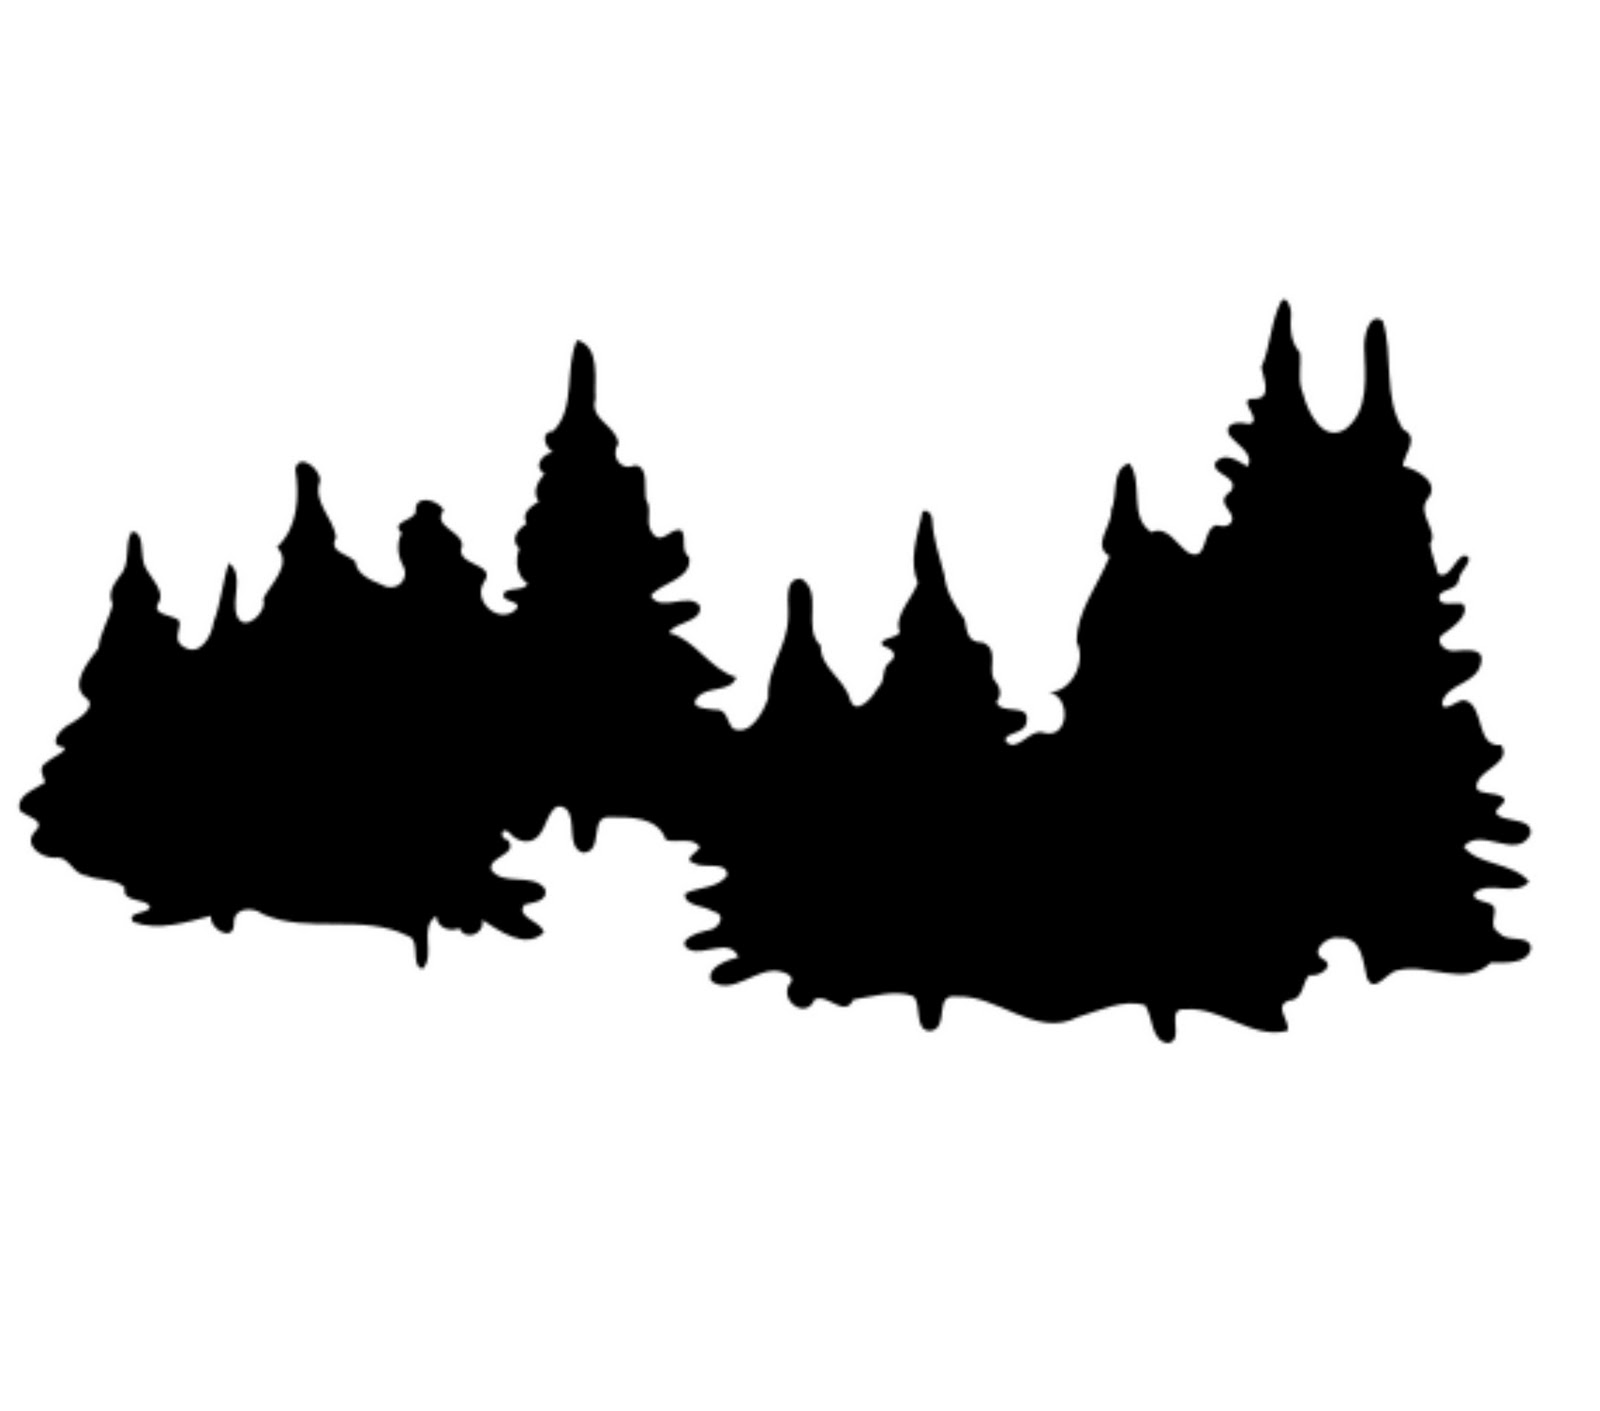 Pine clipart forestry Images Clipart Silhouette Trees Pine